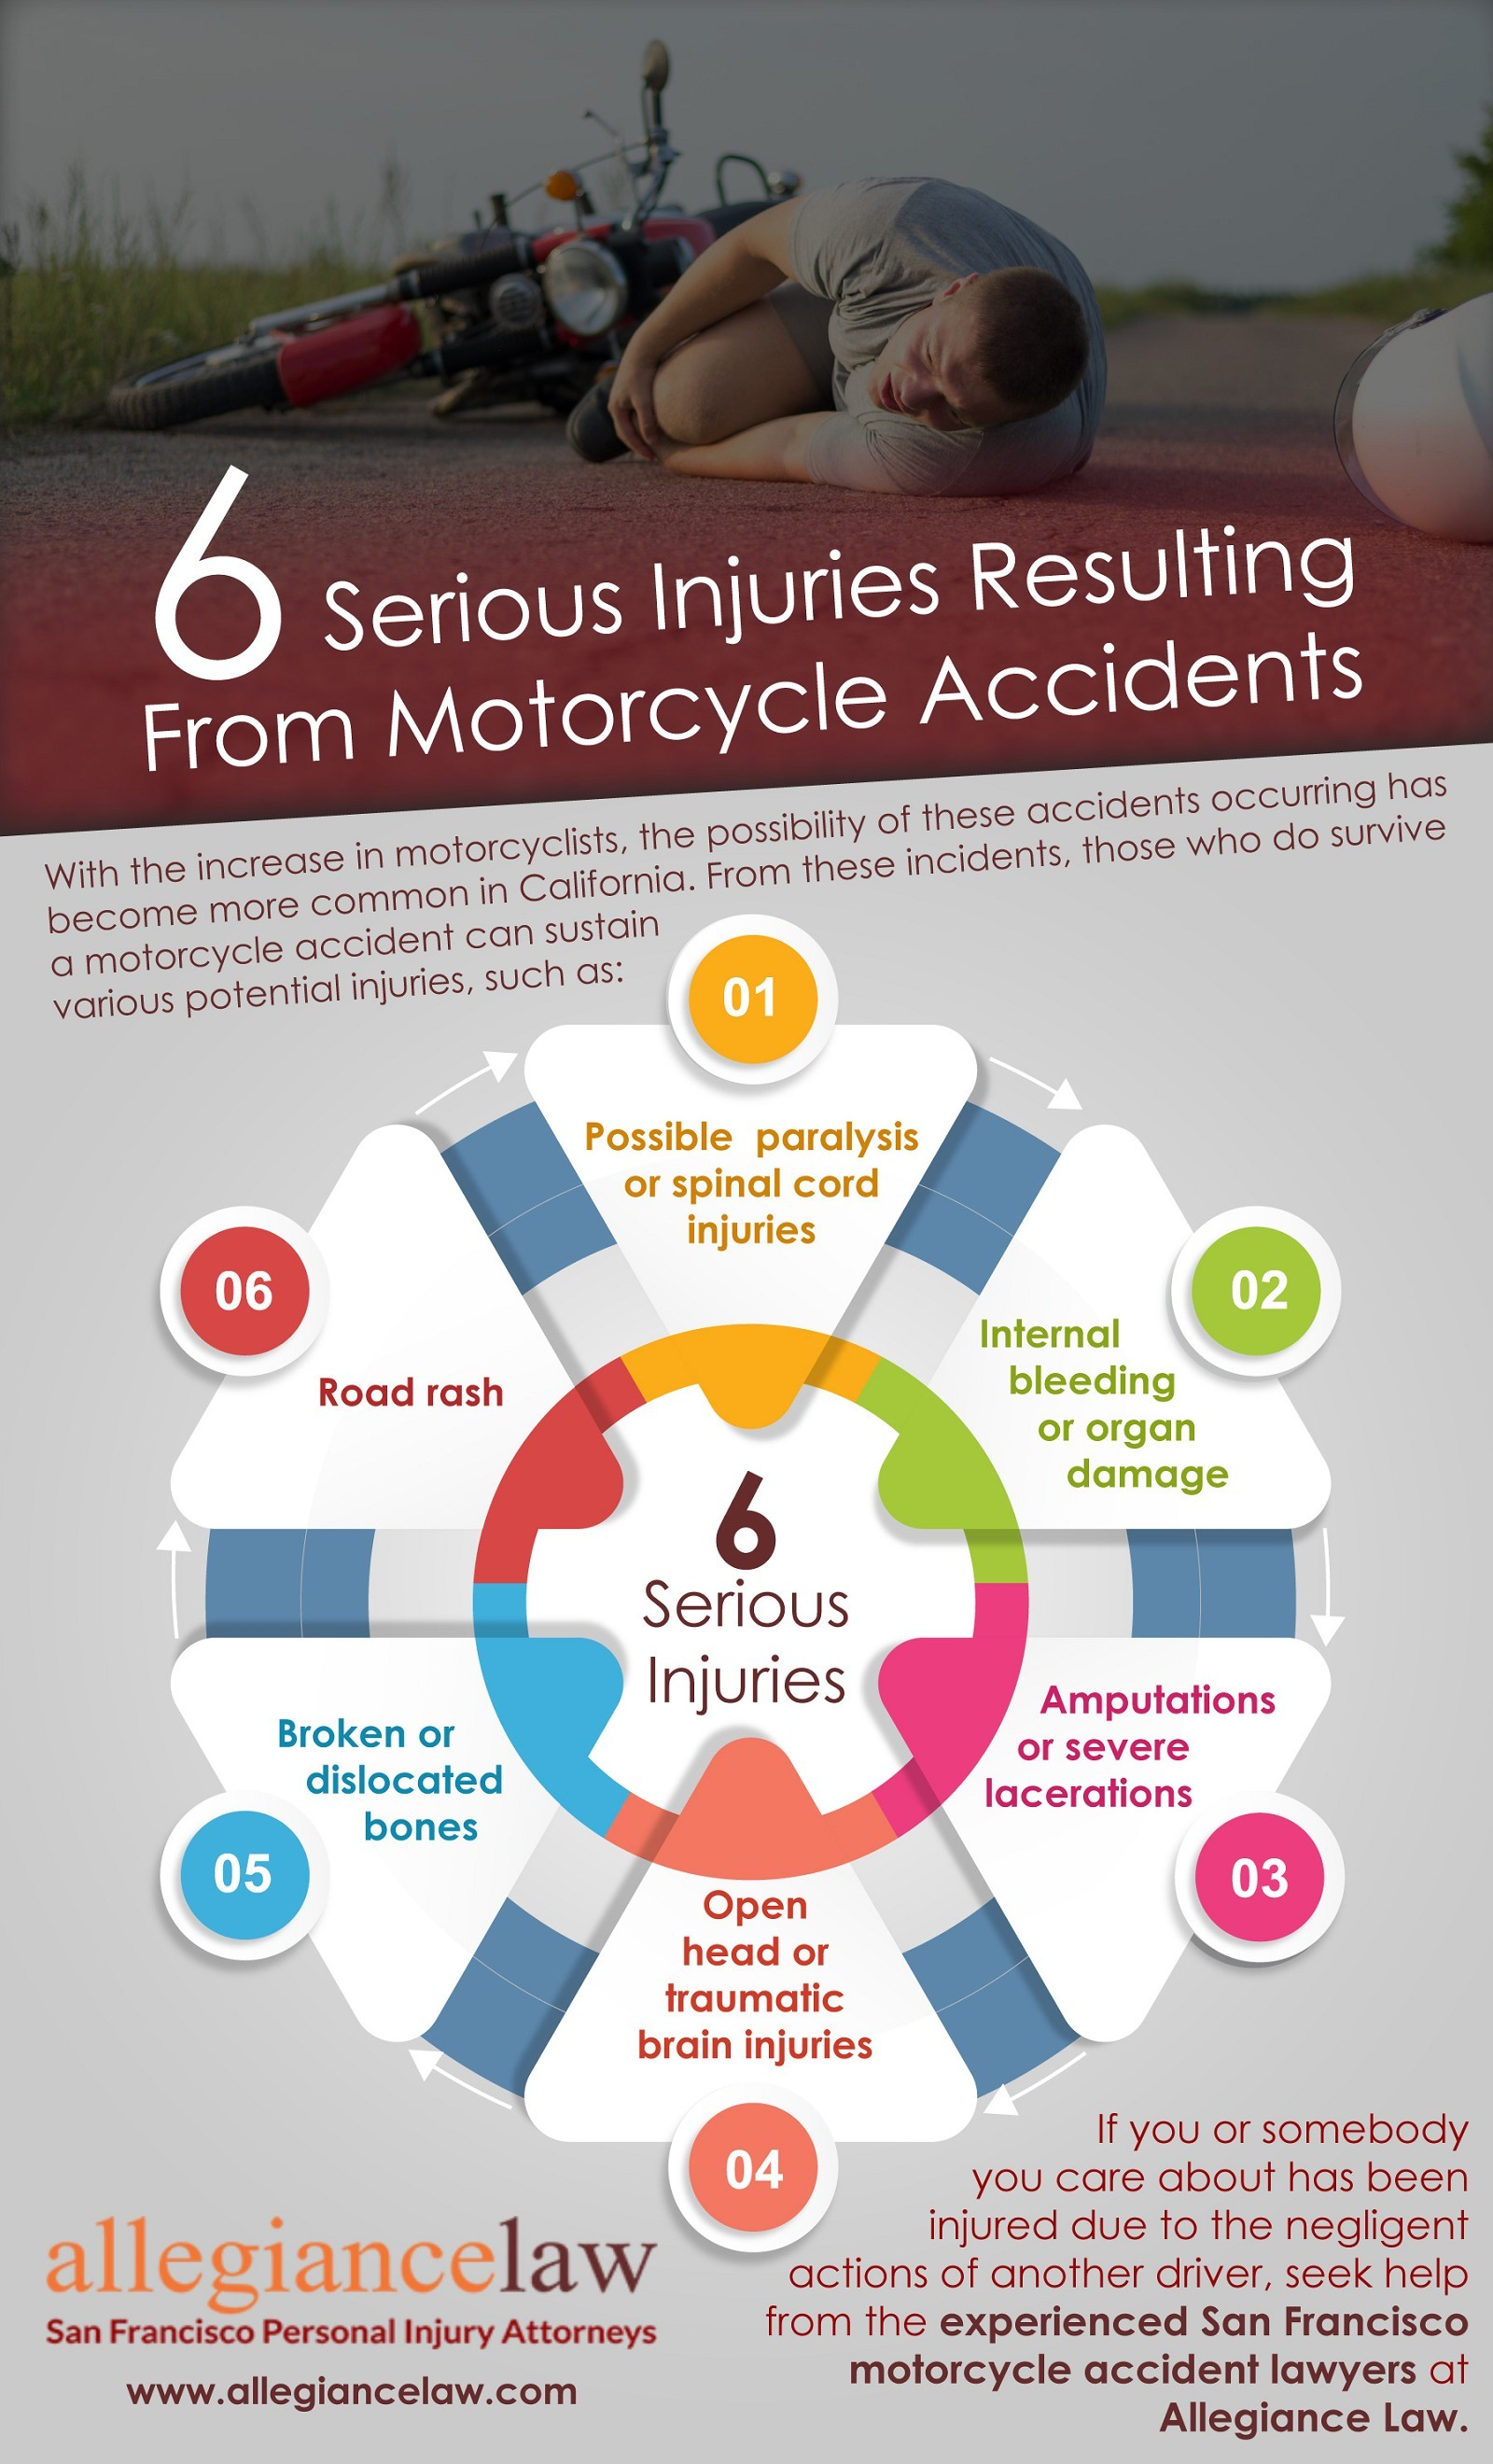 6 Serious Injuries Resulting From Motorcycle Accidents